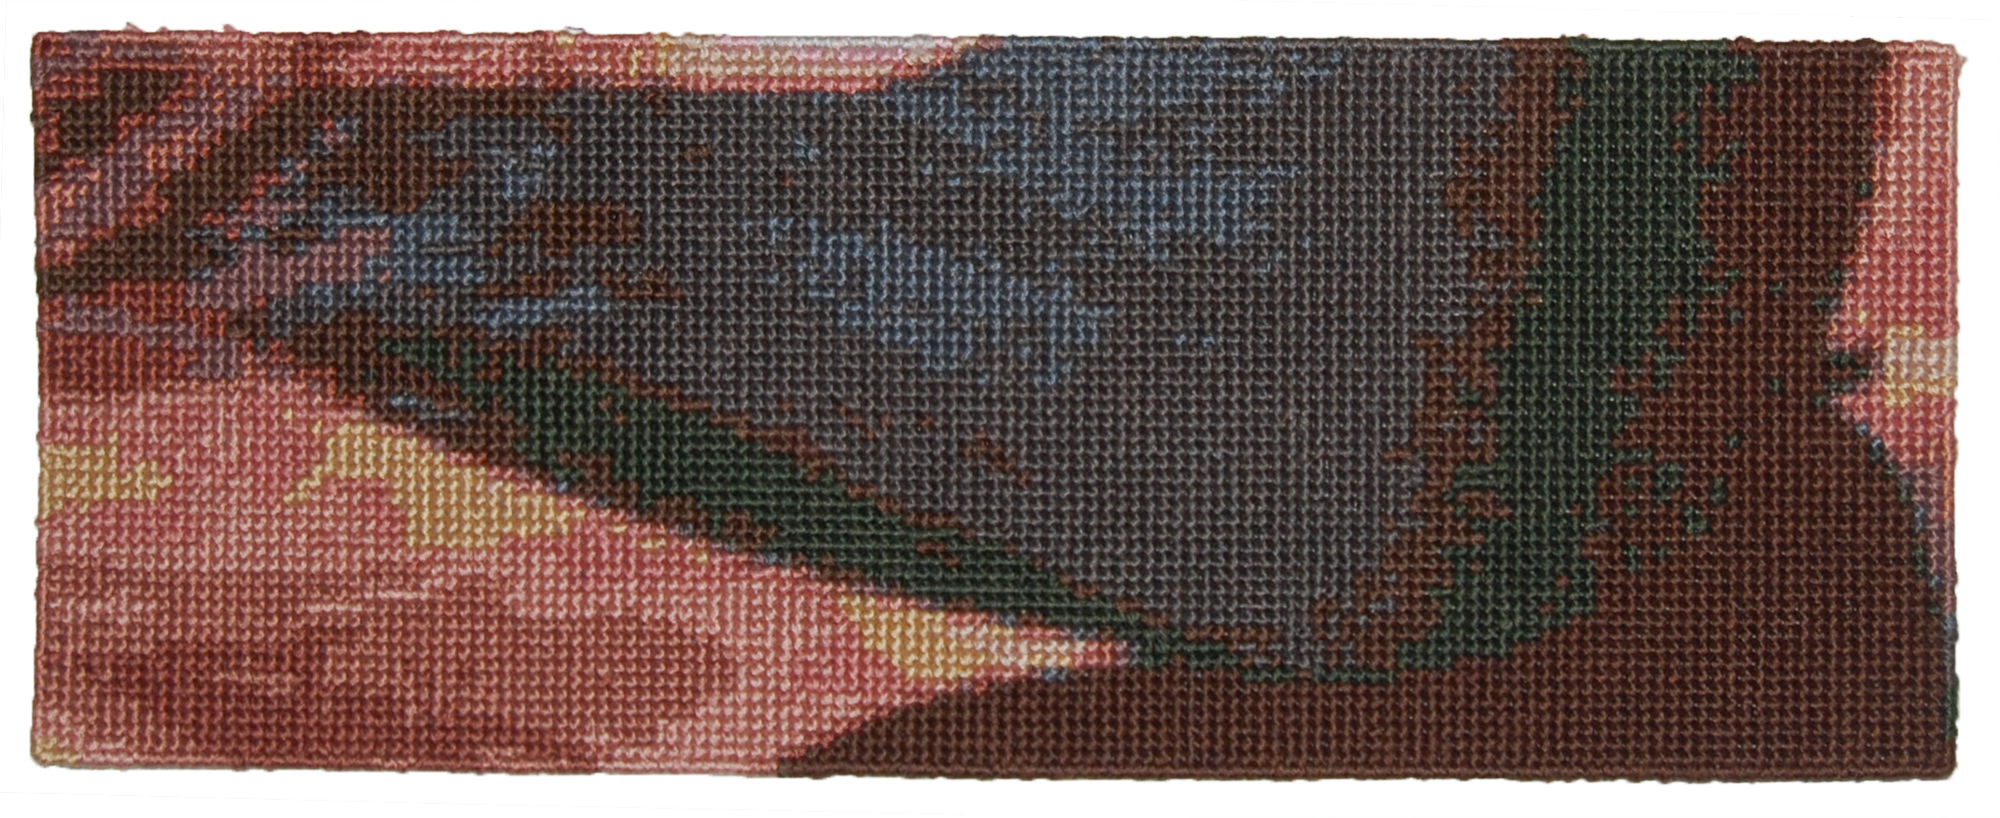 Contemporary Cross Stitch Hand and  Embroidery by Spike Dennis